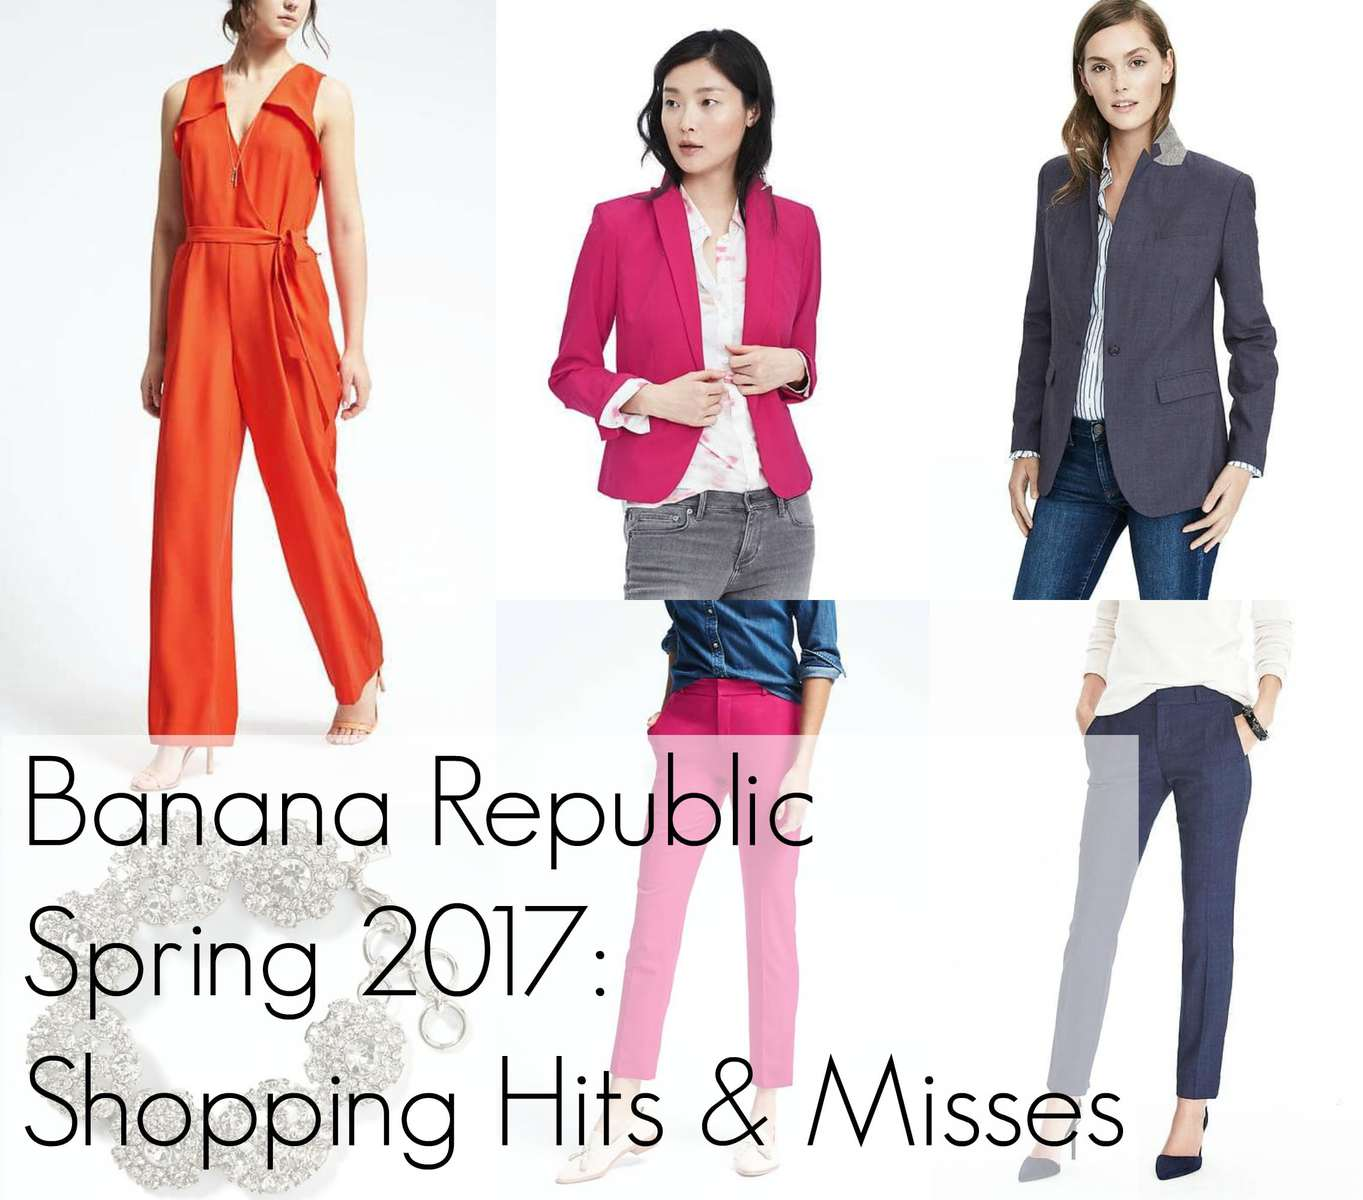 Wardrobe Oxygen Banana Republic Shopping Review Hits and Misses Spring 2017